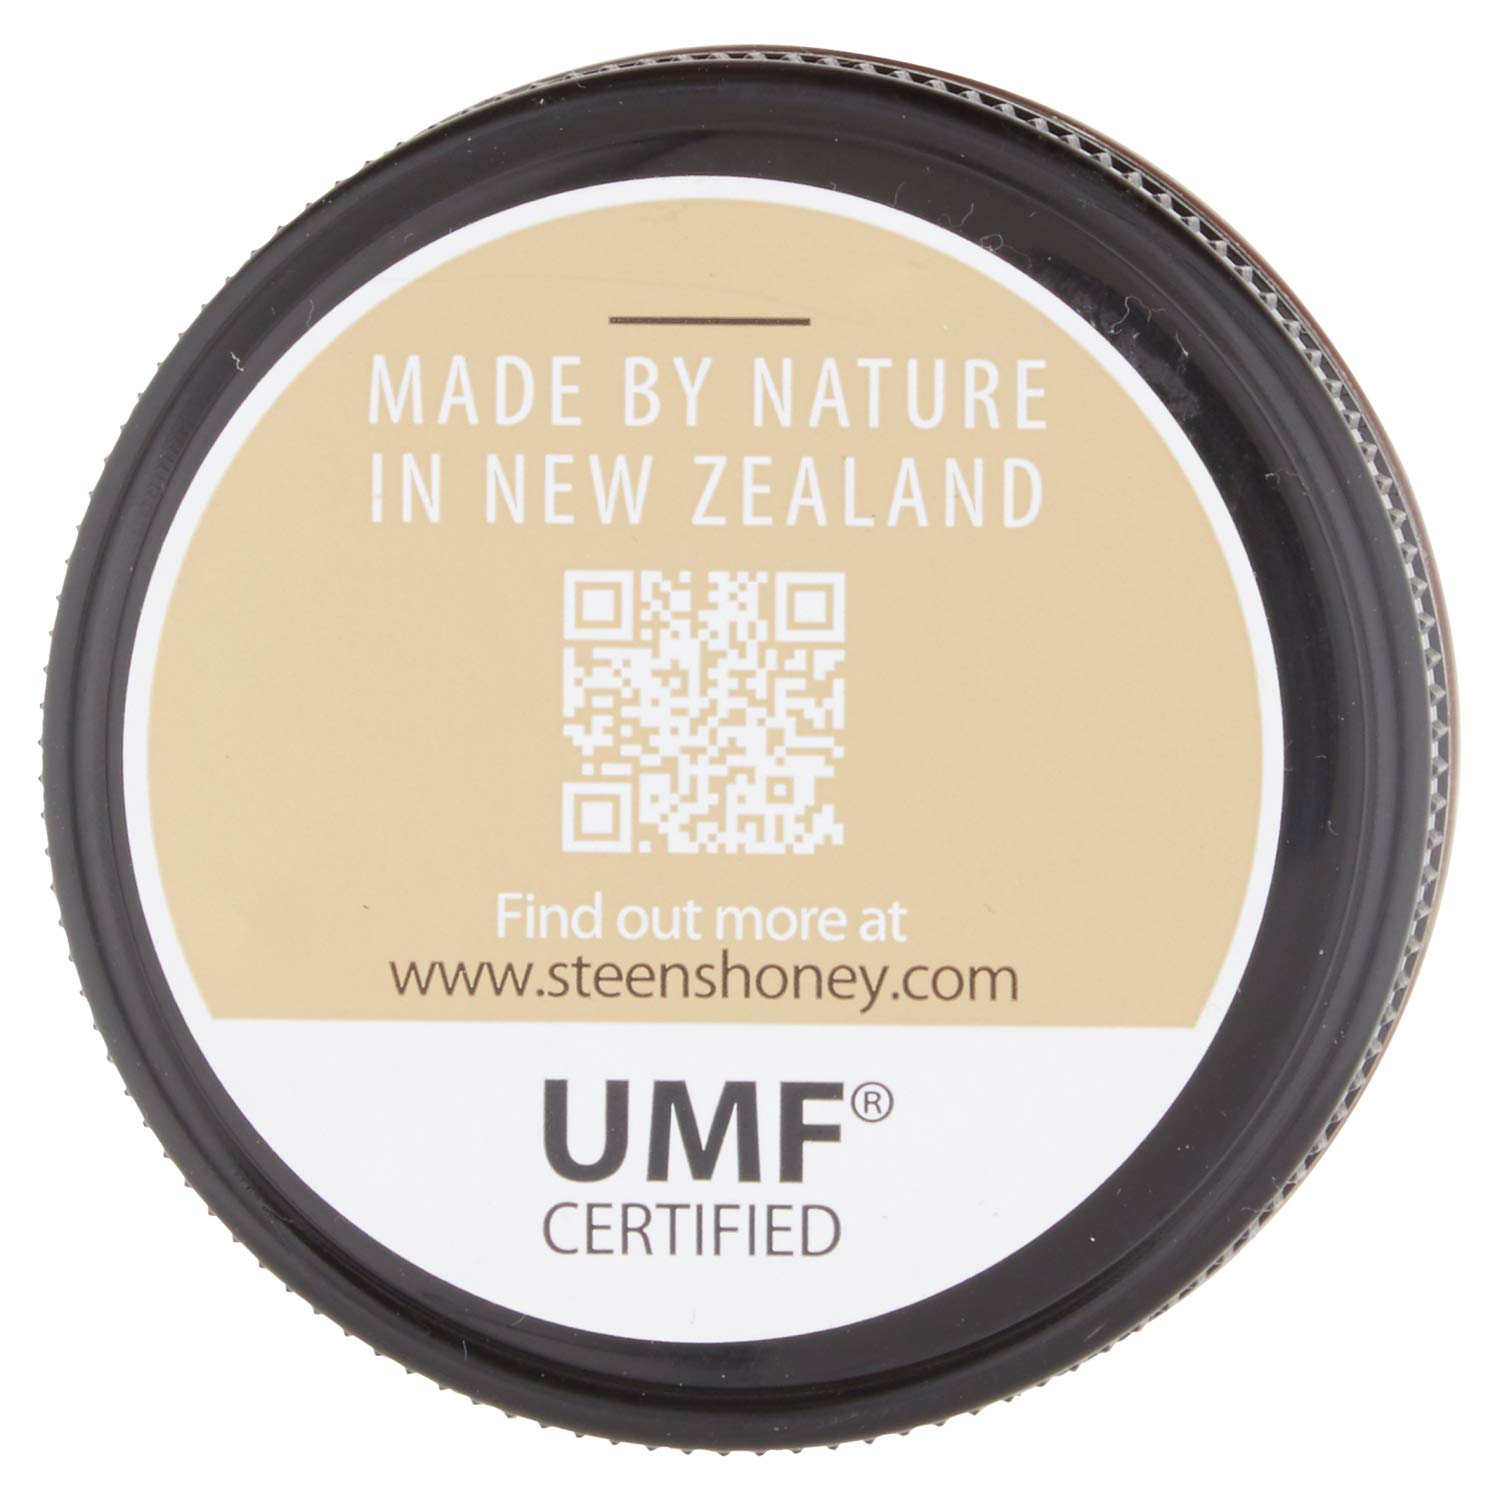 Steens UMF 24 Manuka Honey (MGO 1122) 8.8 Ounce jar with box | Raw Unpasteurized Honey From New Zealand | Traceability Code on Each Label by Steens (Image #5)